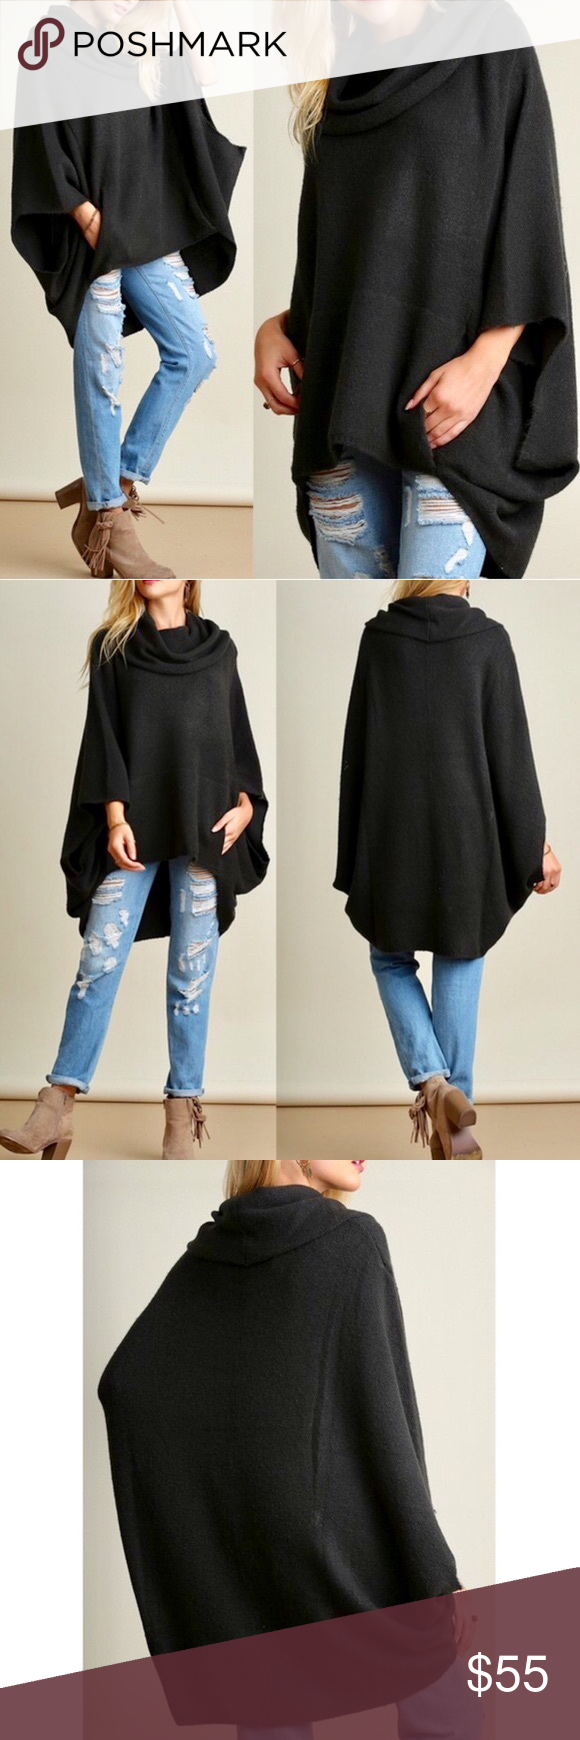 KAYCEE poncho style sweater - D. CHARCOAL Super fun & comfy cowl ...